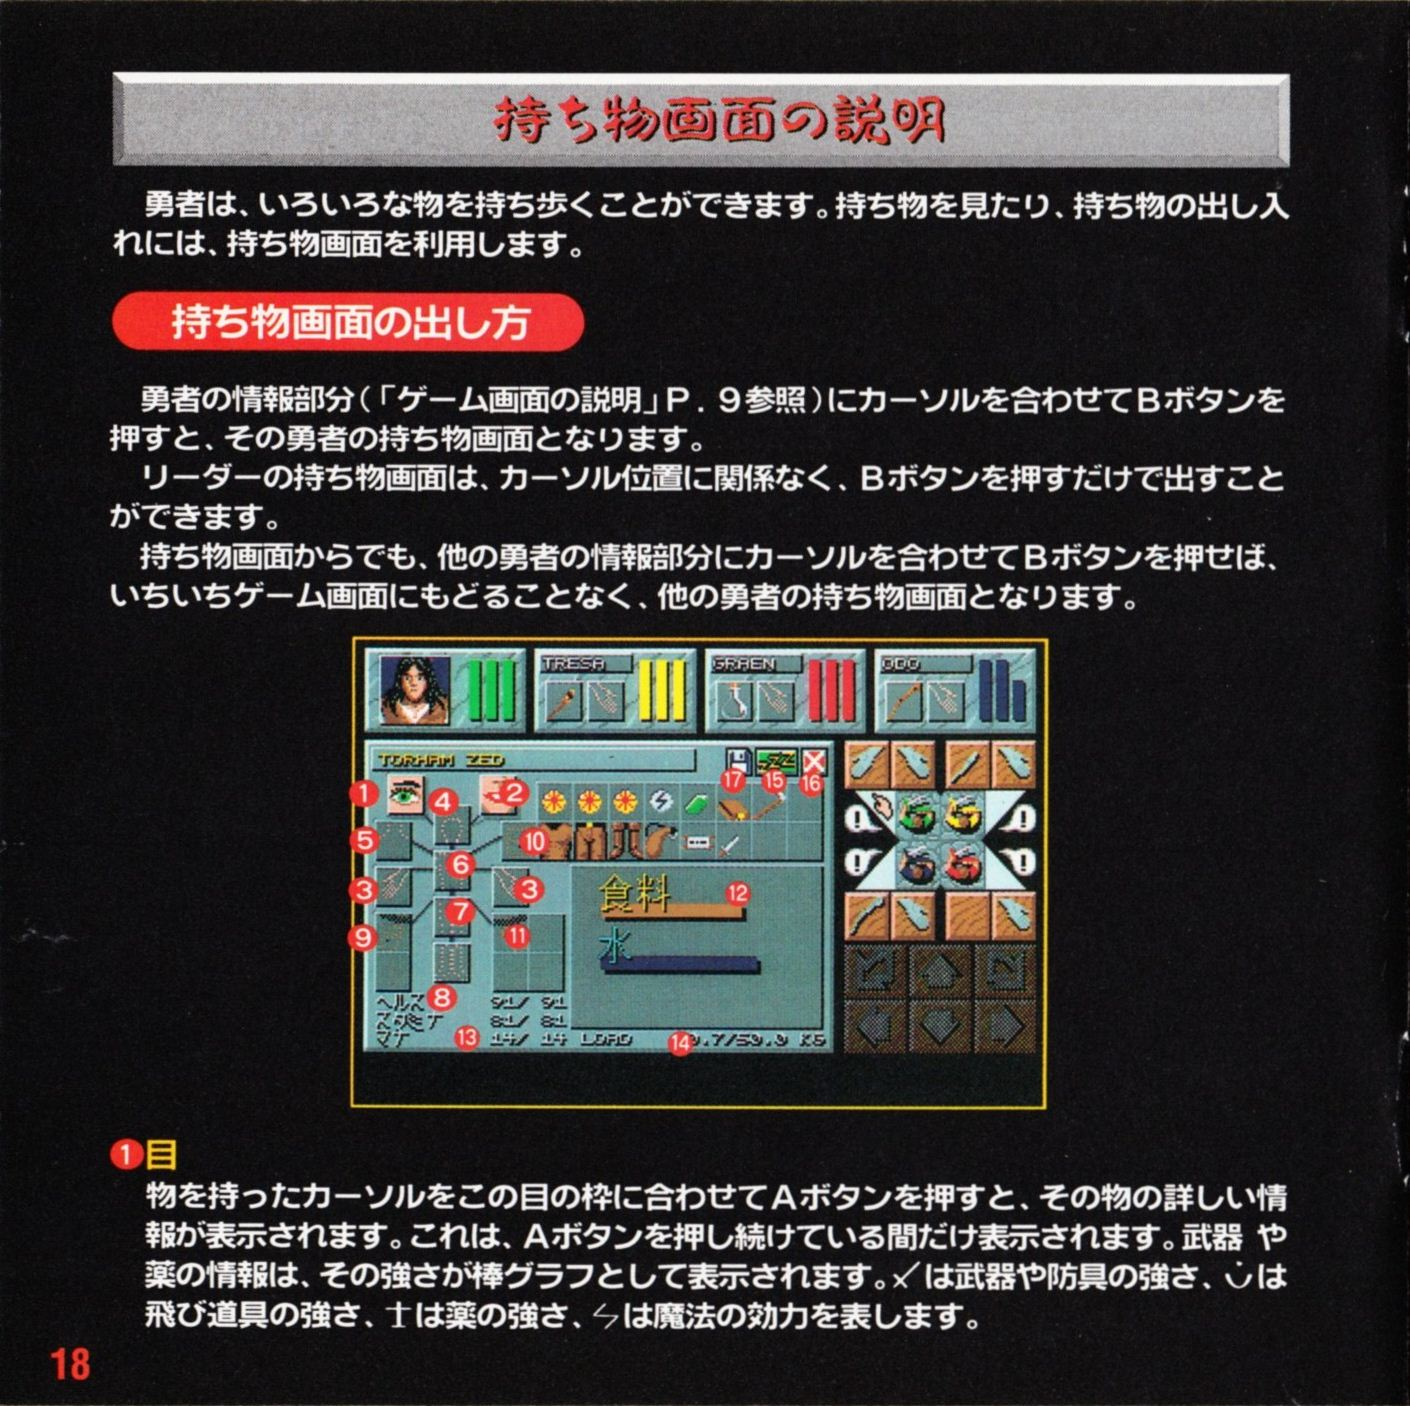 Game - Dungeon Master II - JP - Mega CD - Booklet - Page 020 - Scan